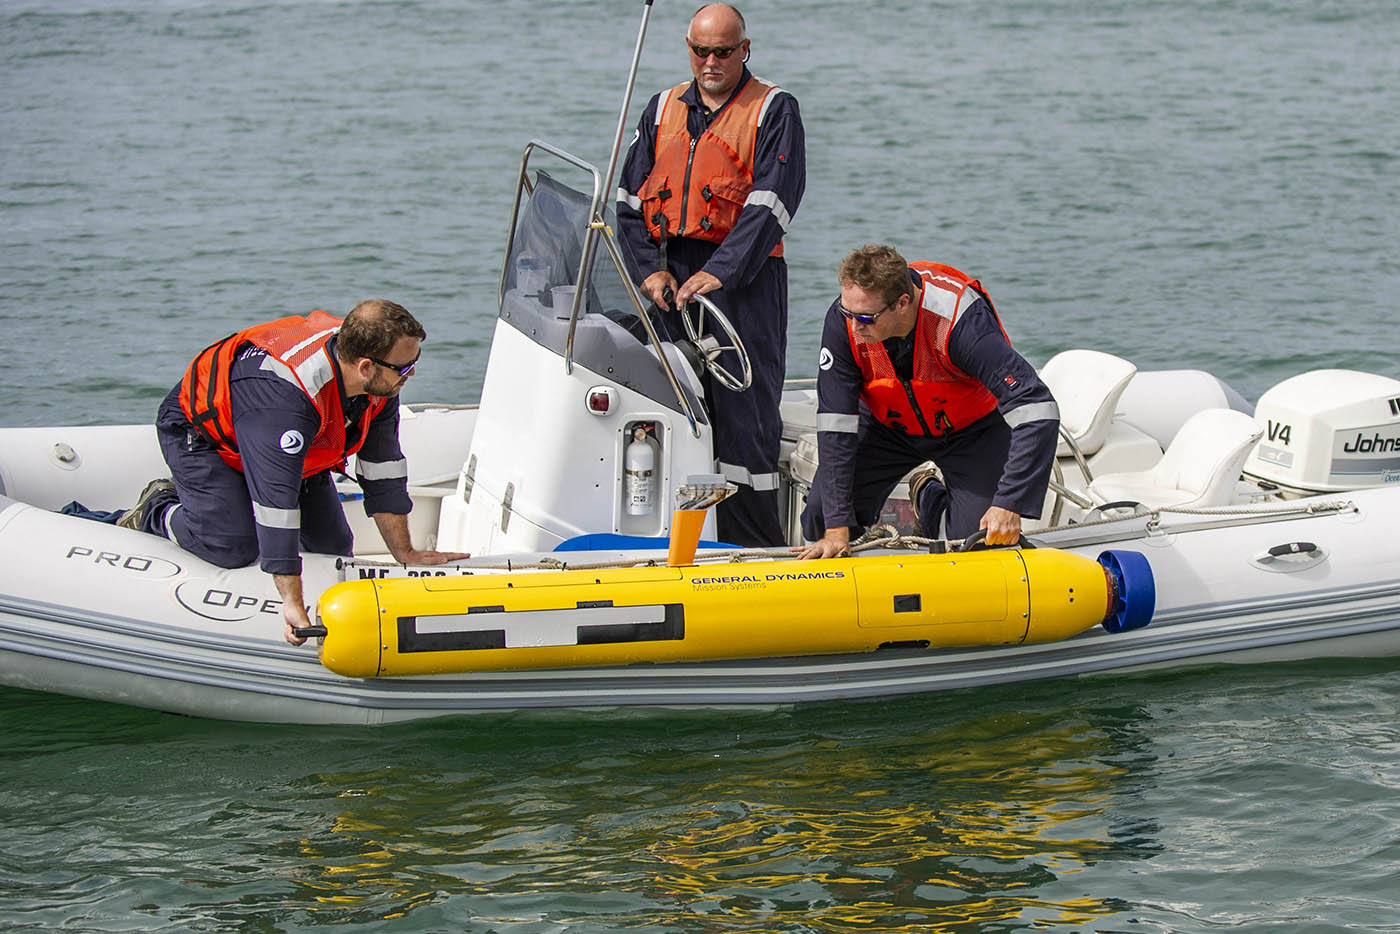 General Dynamics Launches Latest Unmanned Underwater Vehicle